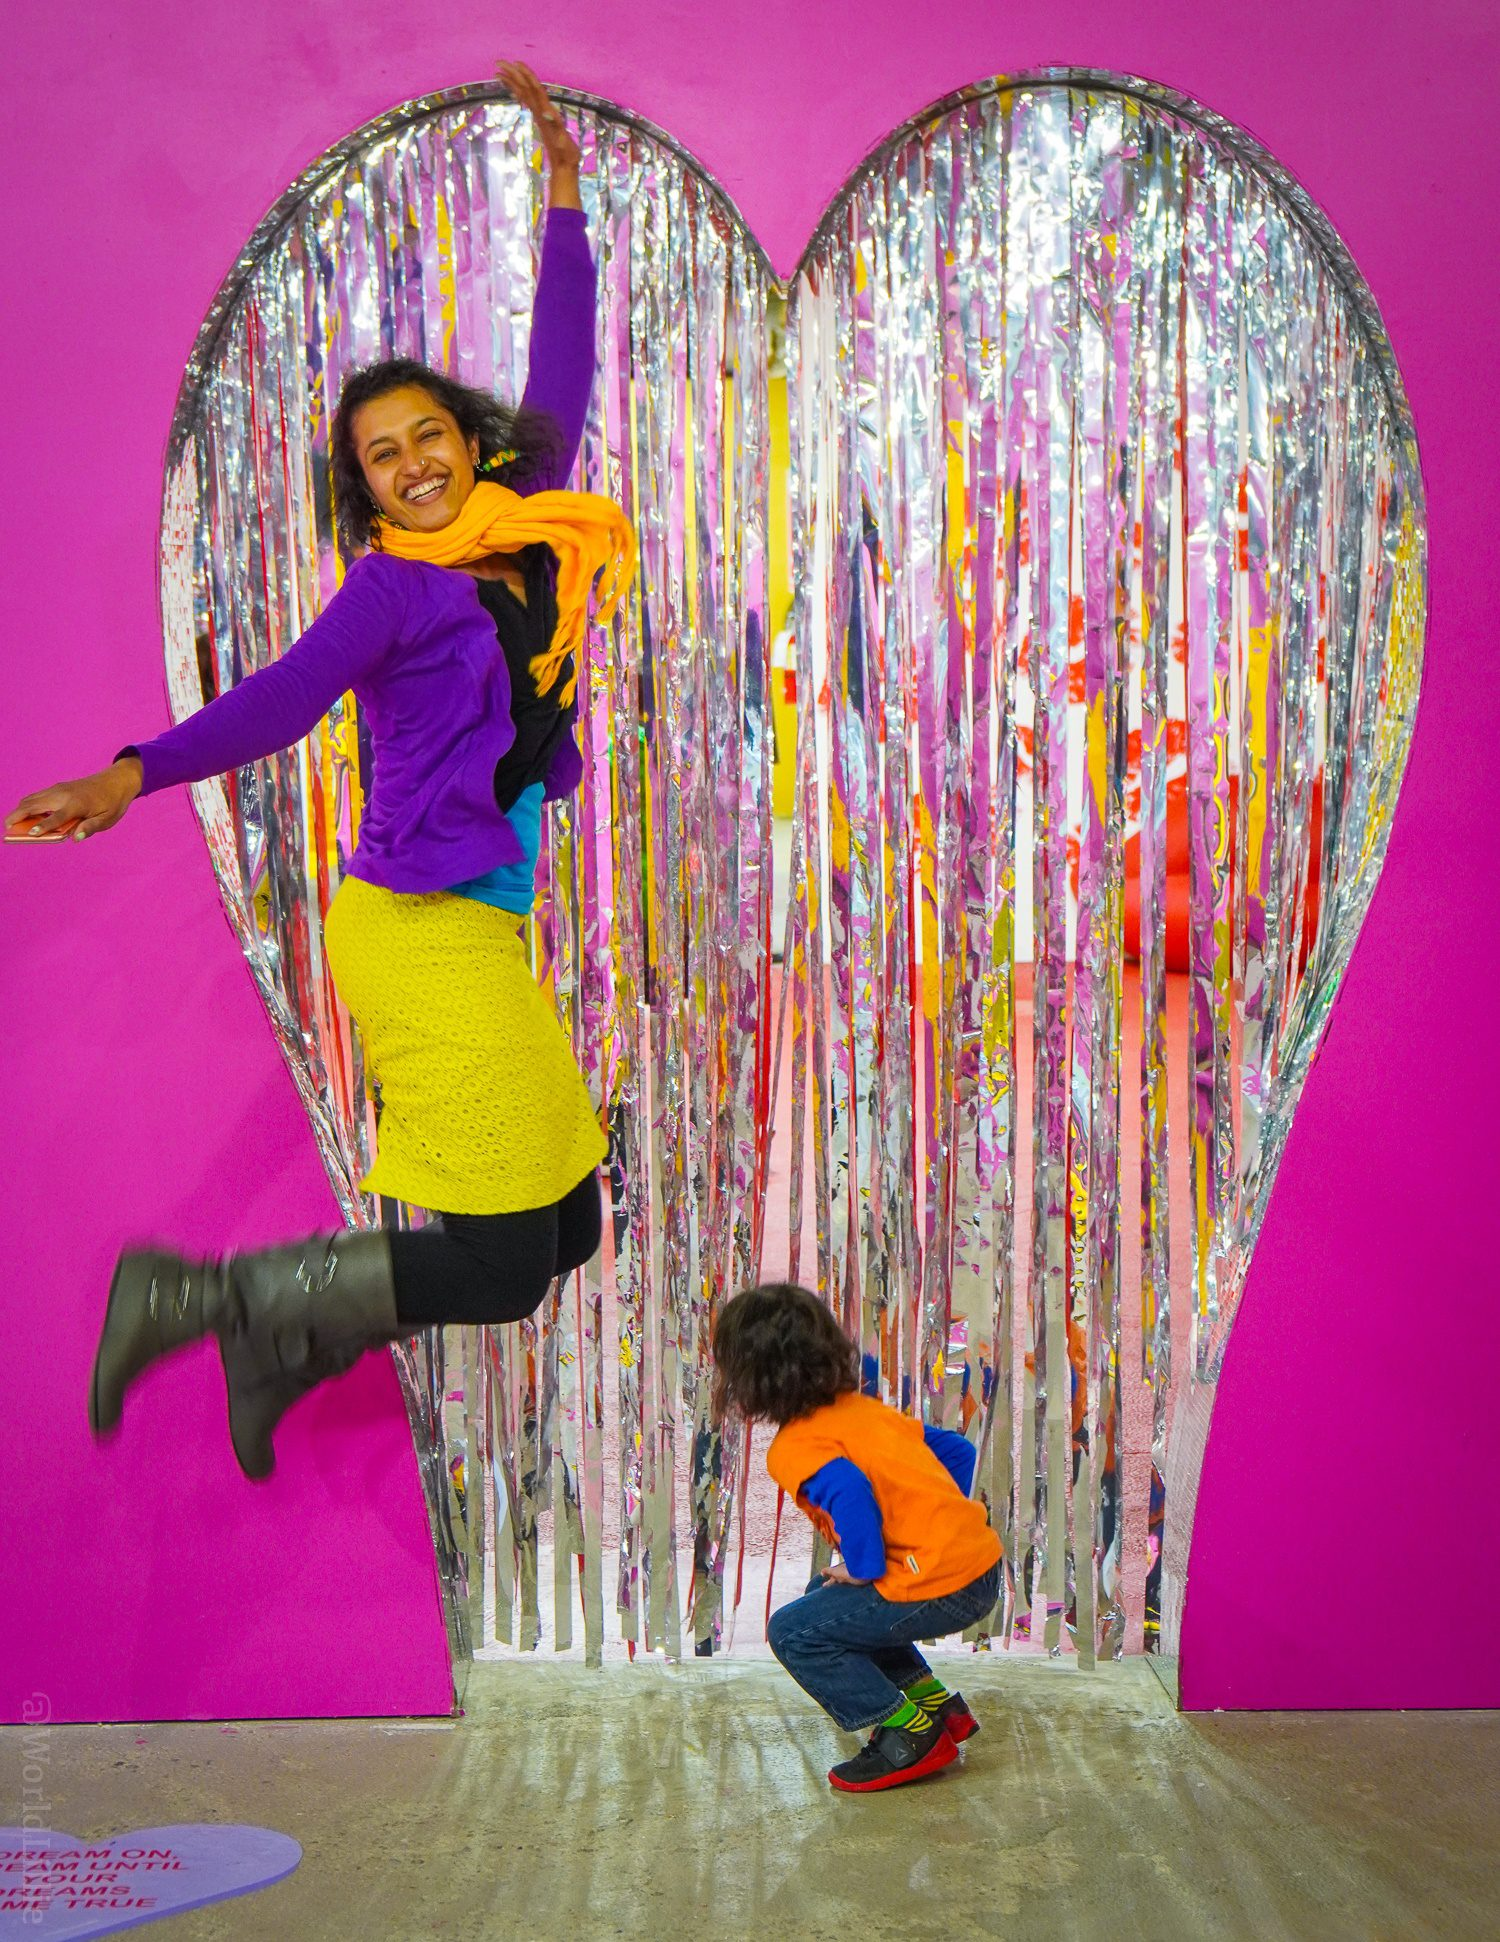 Jumping for joy at the photo playground pop-up of Happy Place!